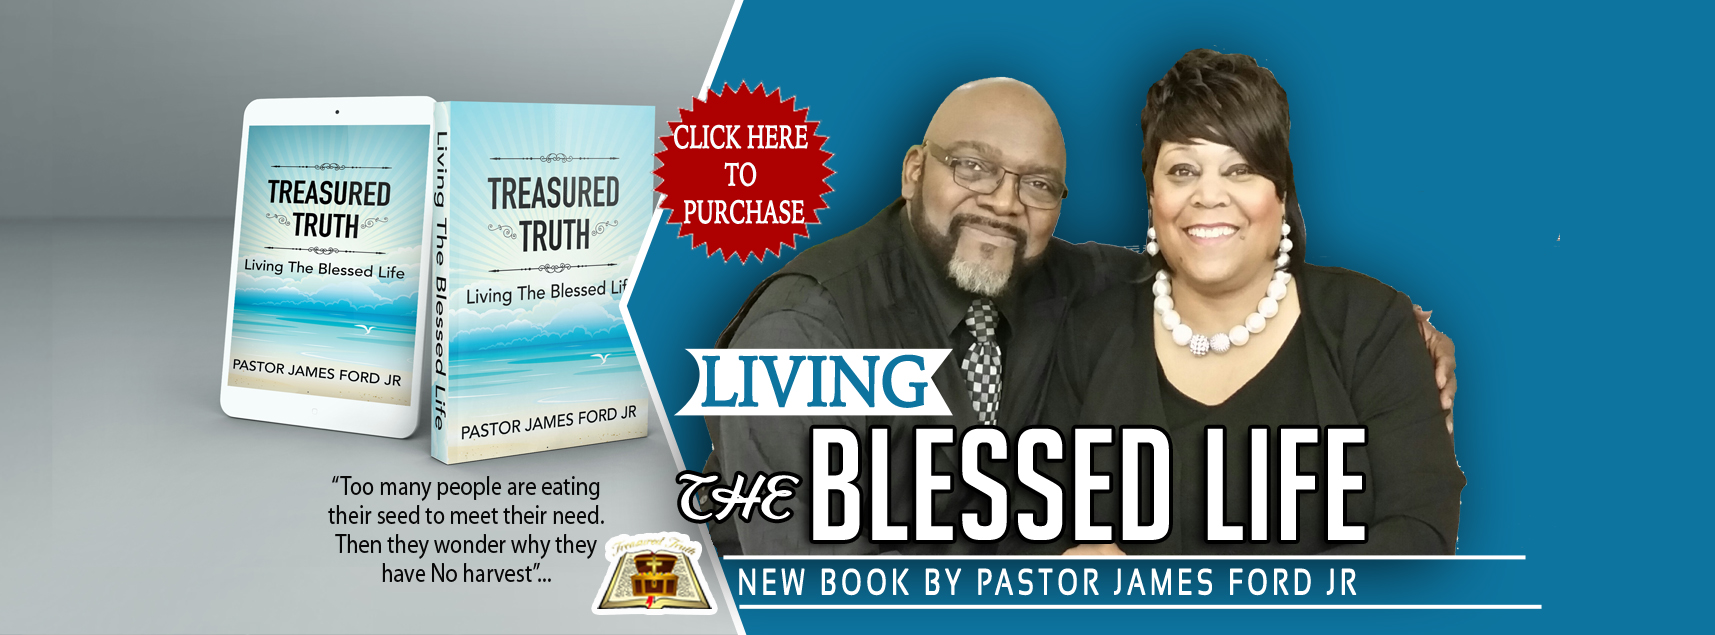 blessed-life-cover-PURCHASE